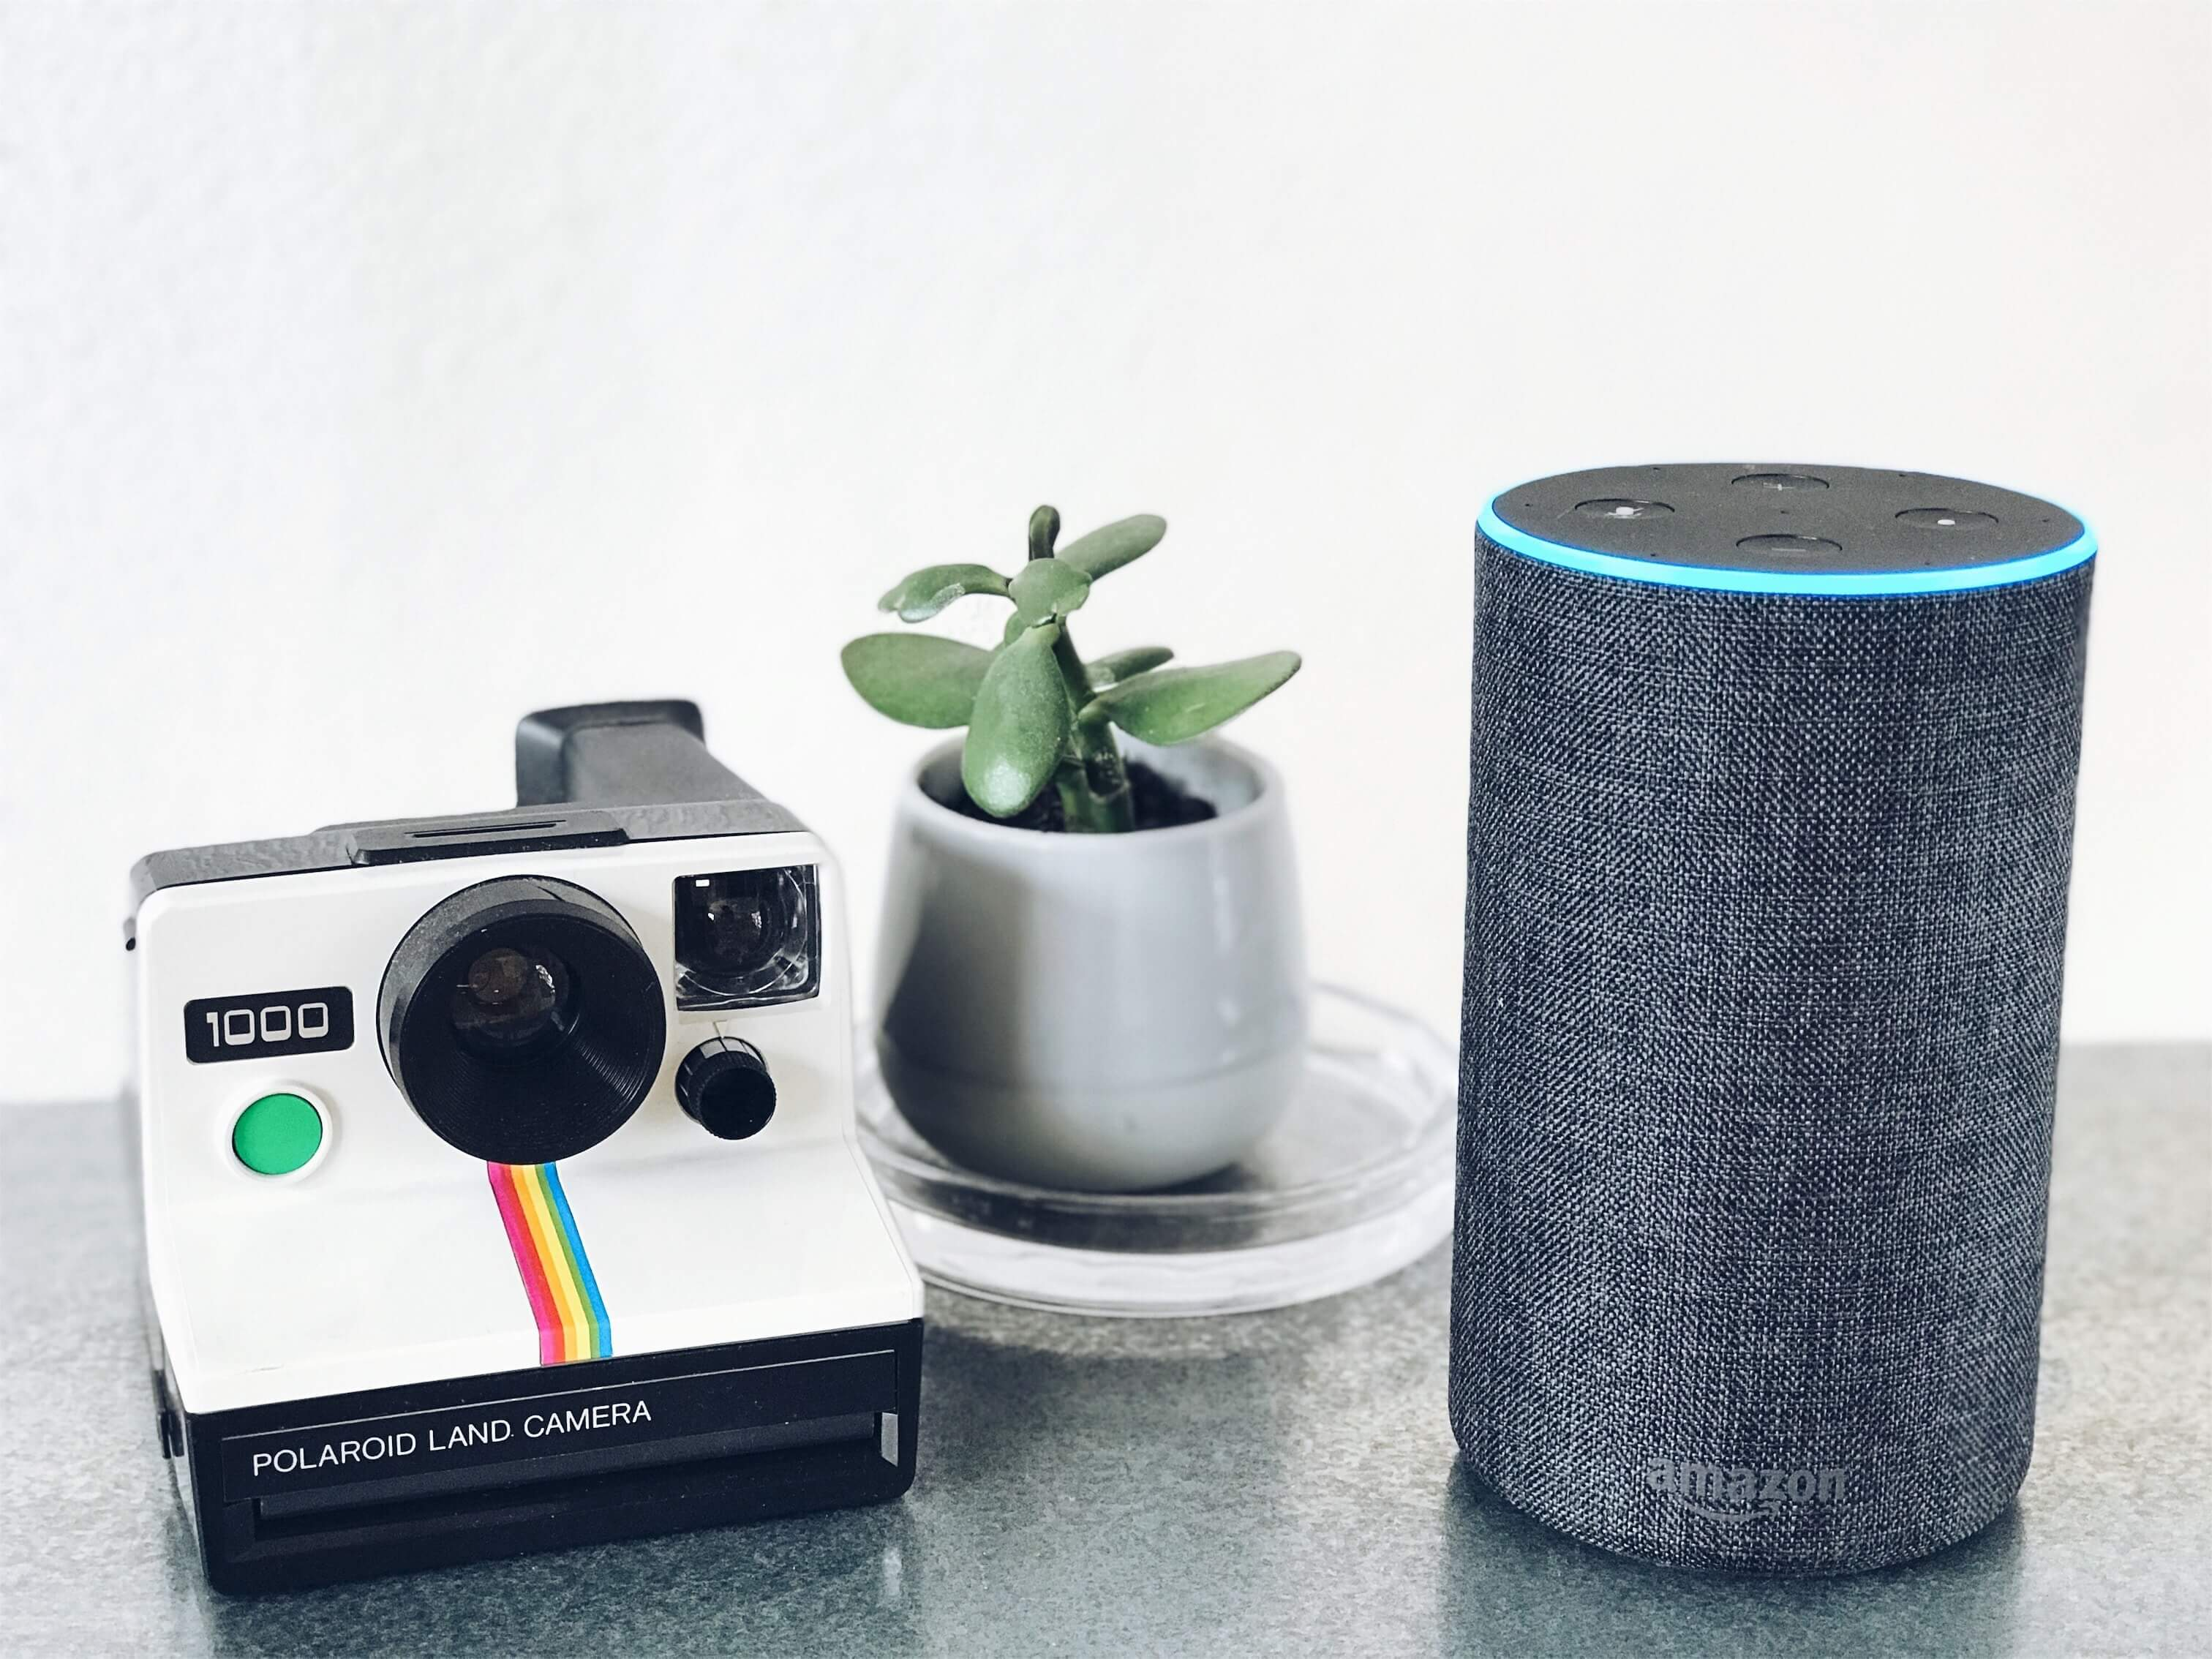 Amazon Echo powered by Alexa, a plant pot, and a polaroid land camera placed close to each other